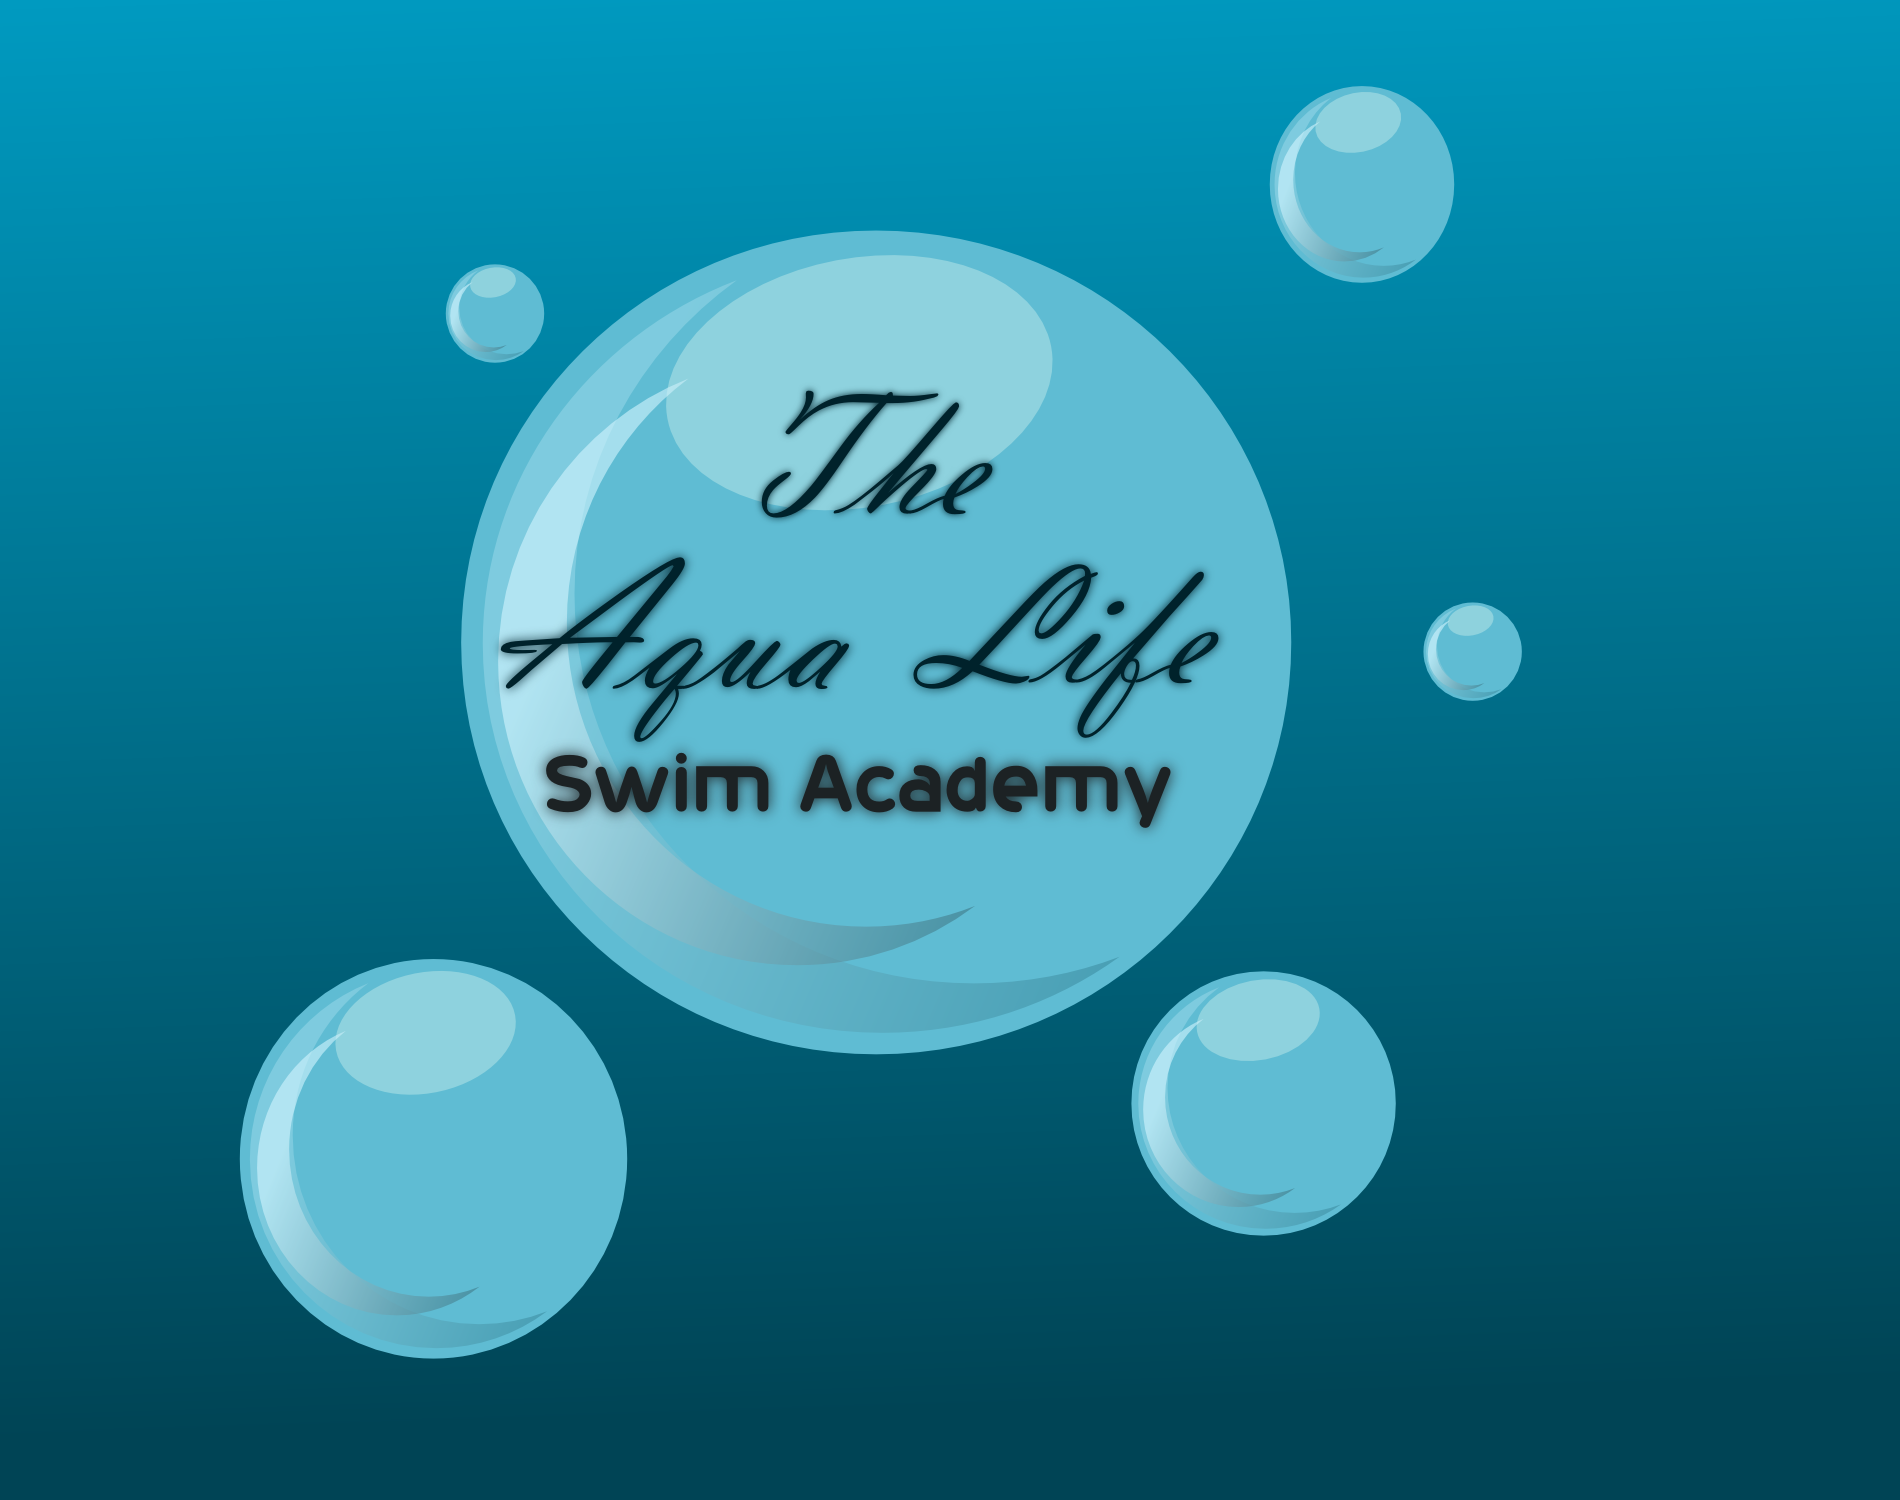 Logo Design by Arindam Khanda - Entry No. 56 in the Logo Design Contest Artistic Logo Design Wanted for The Aqua Life Swim Academy.